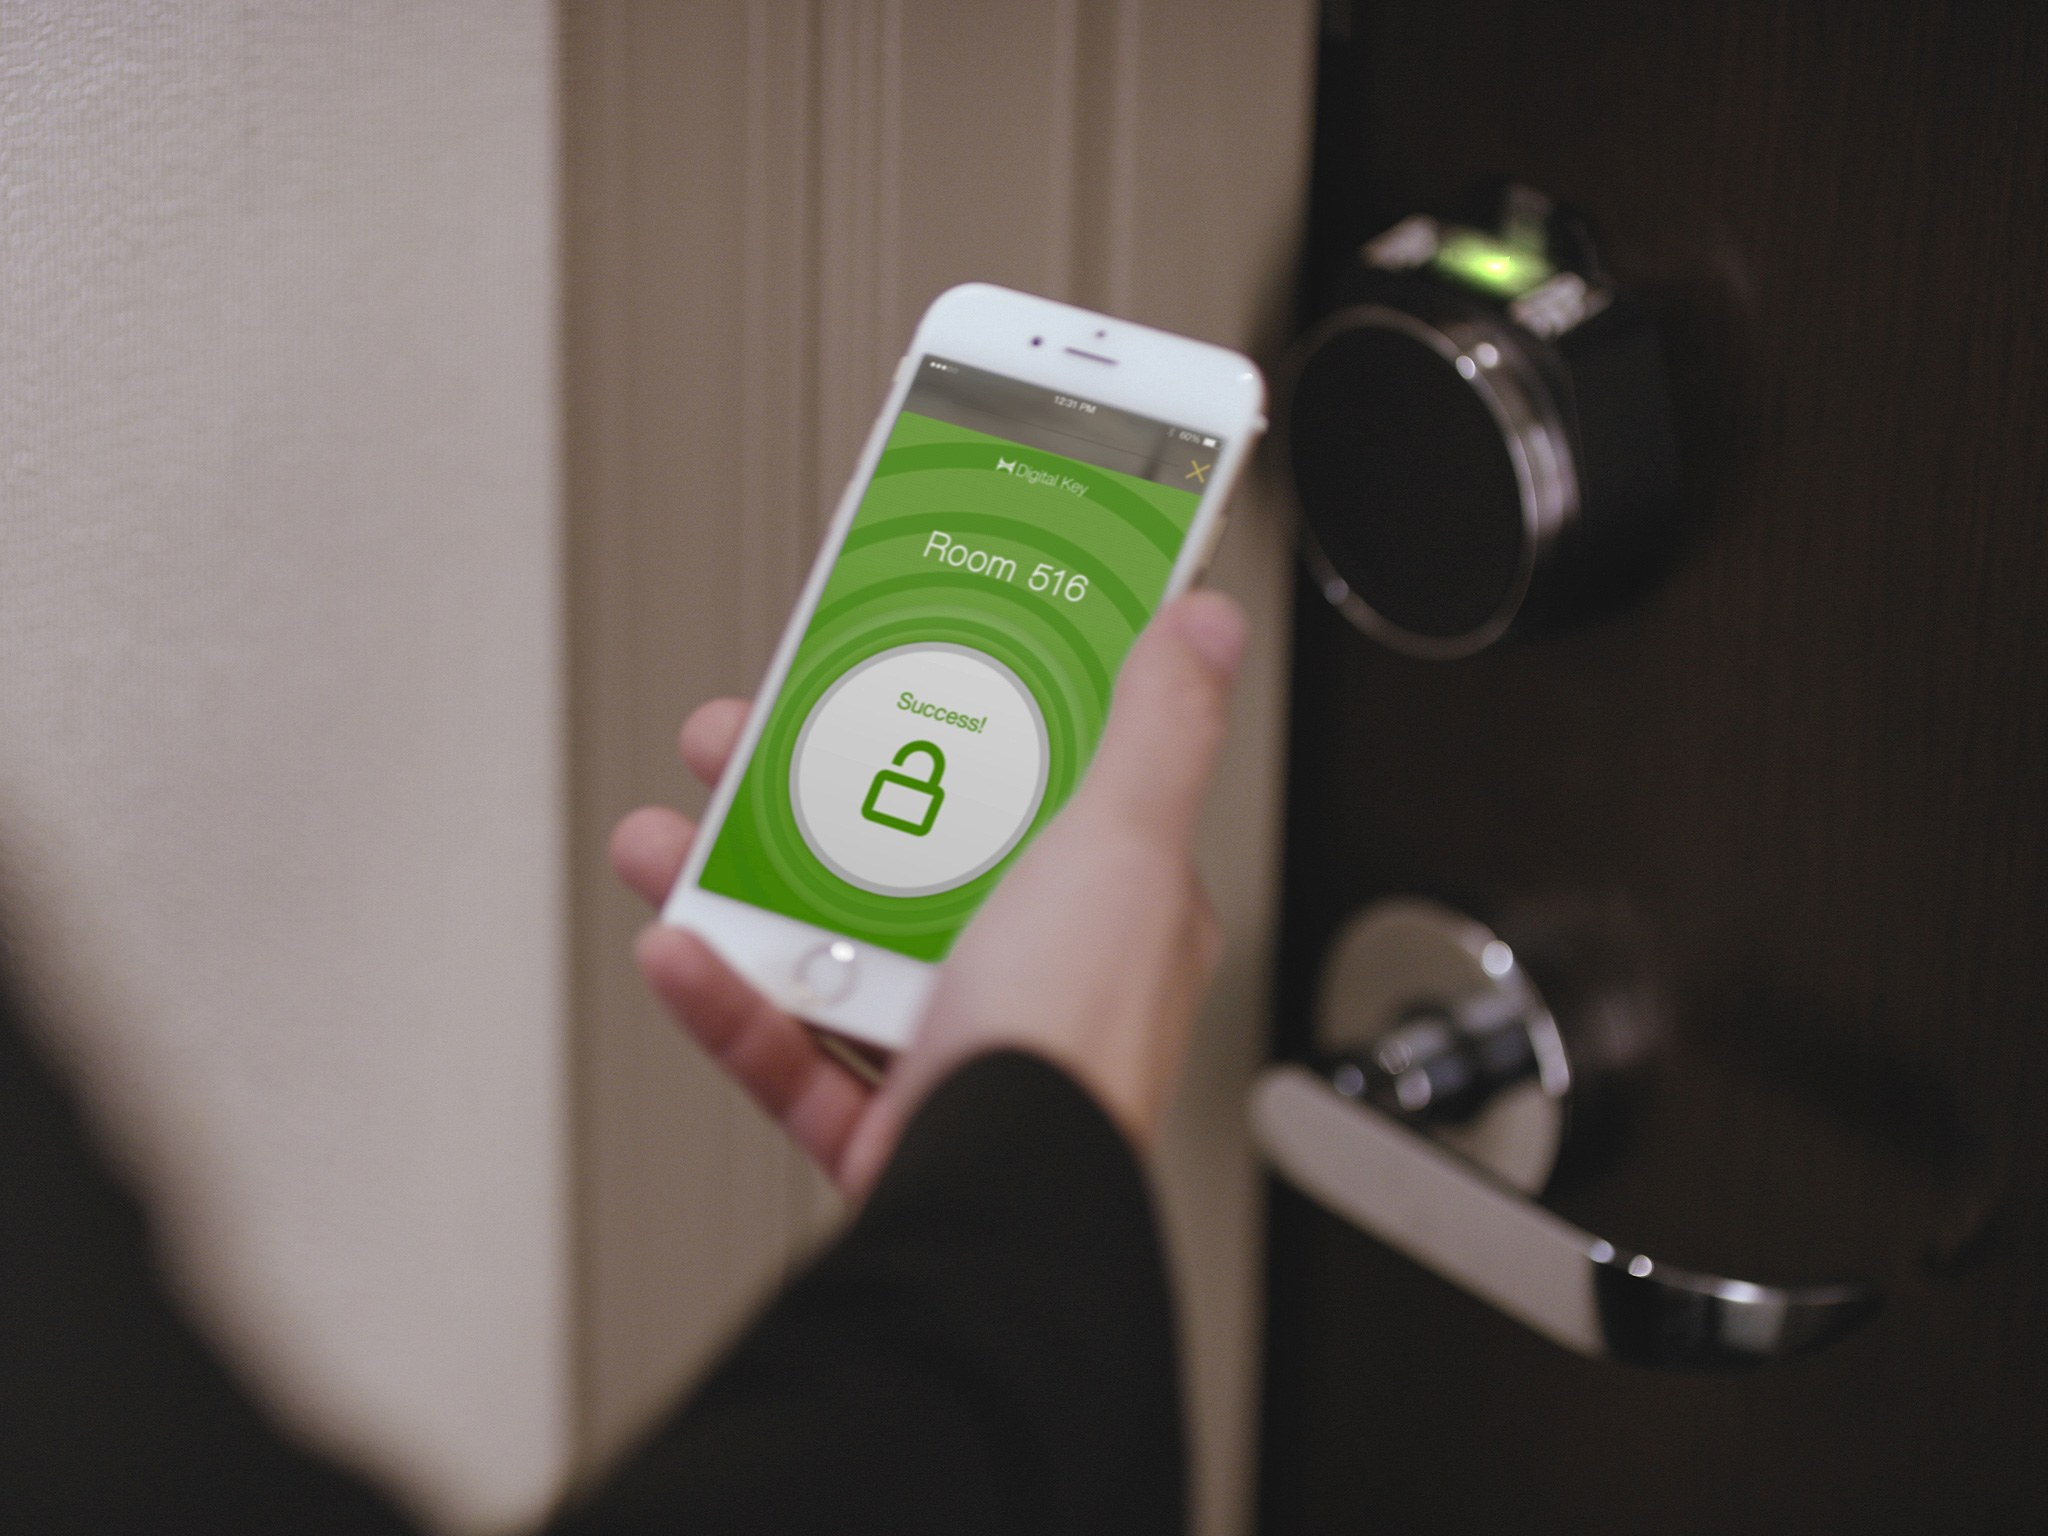 smartphone could be a key for Hilton's room